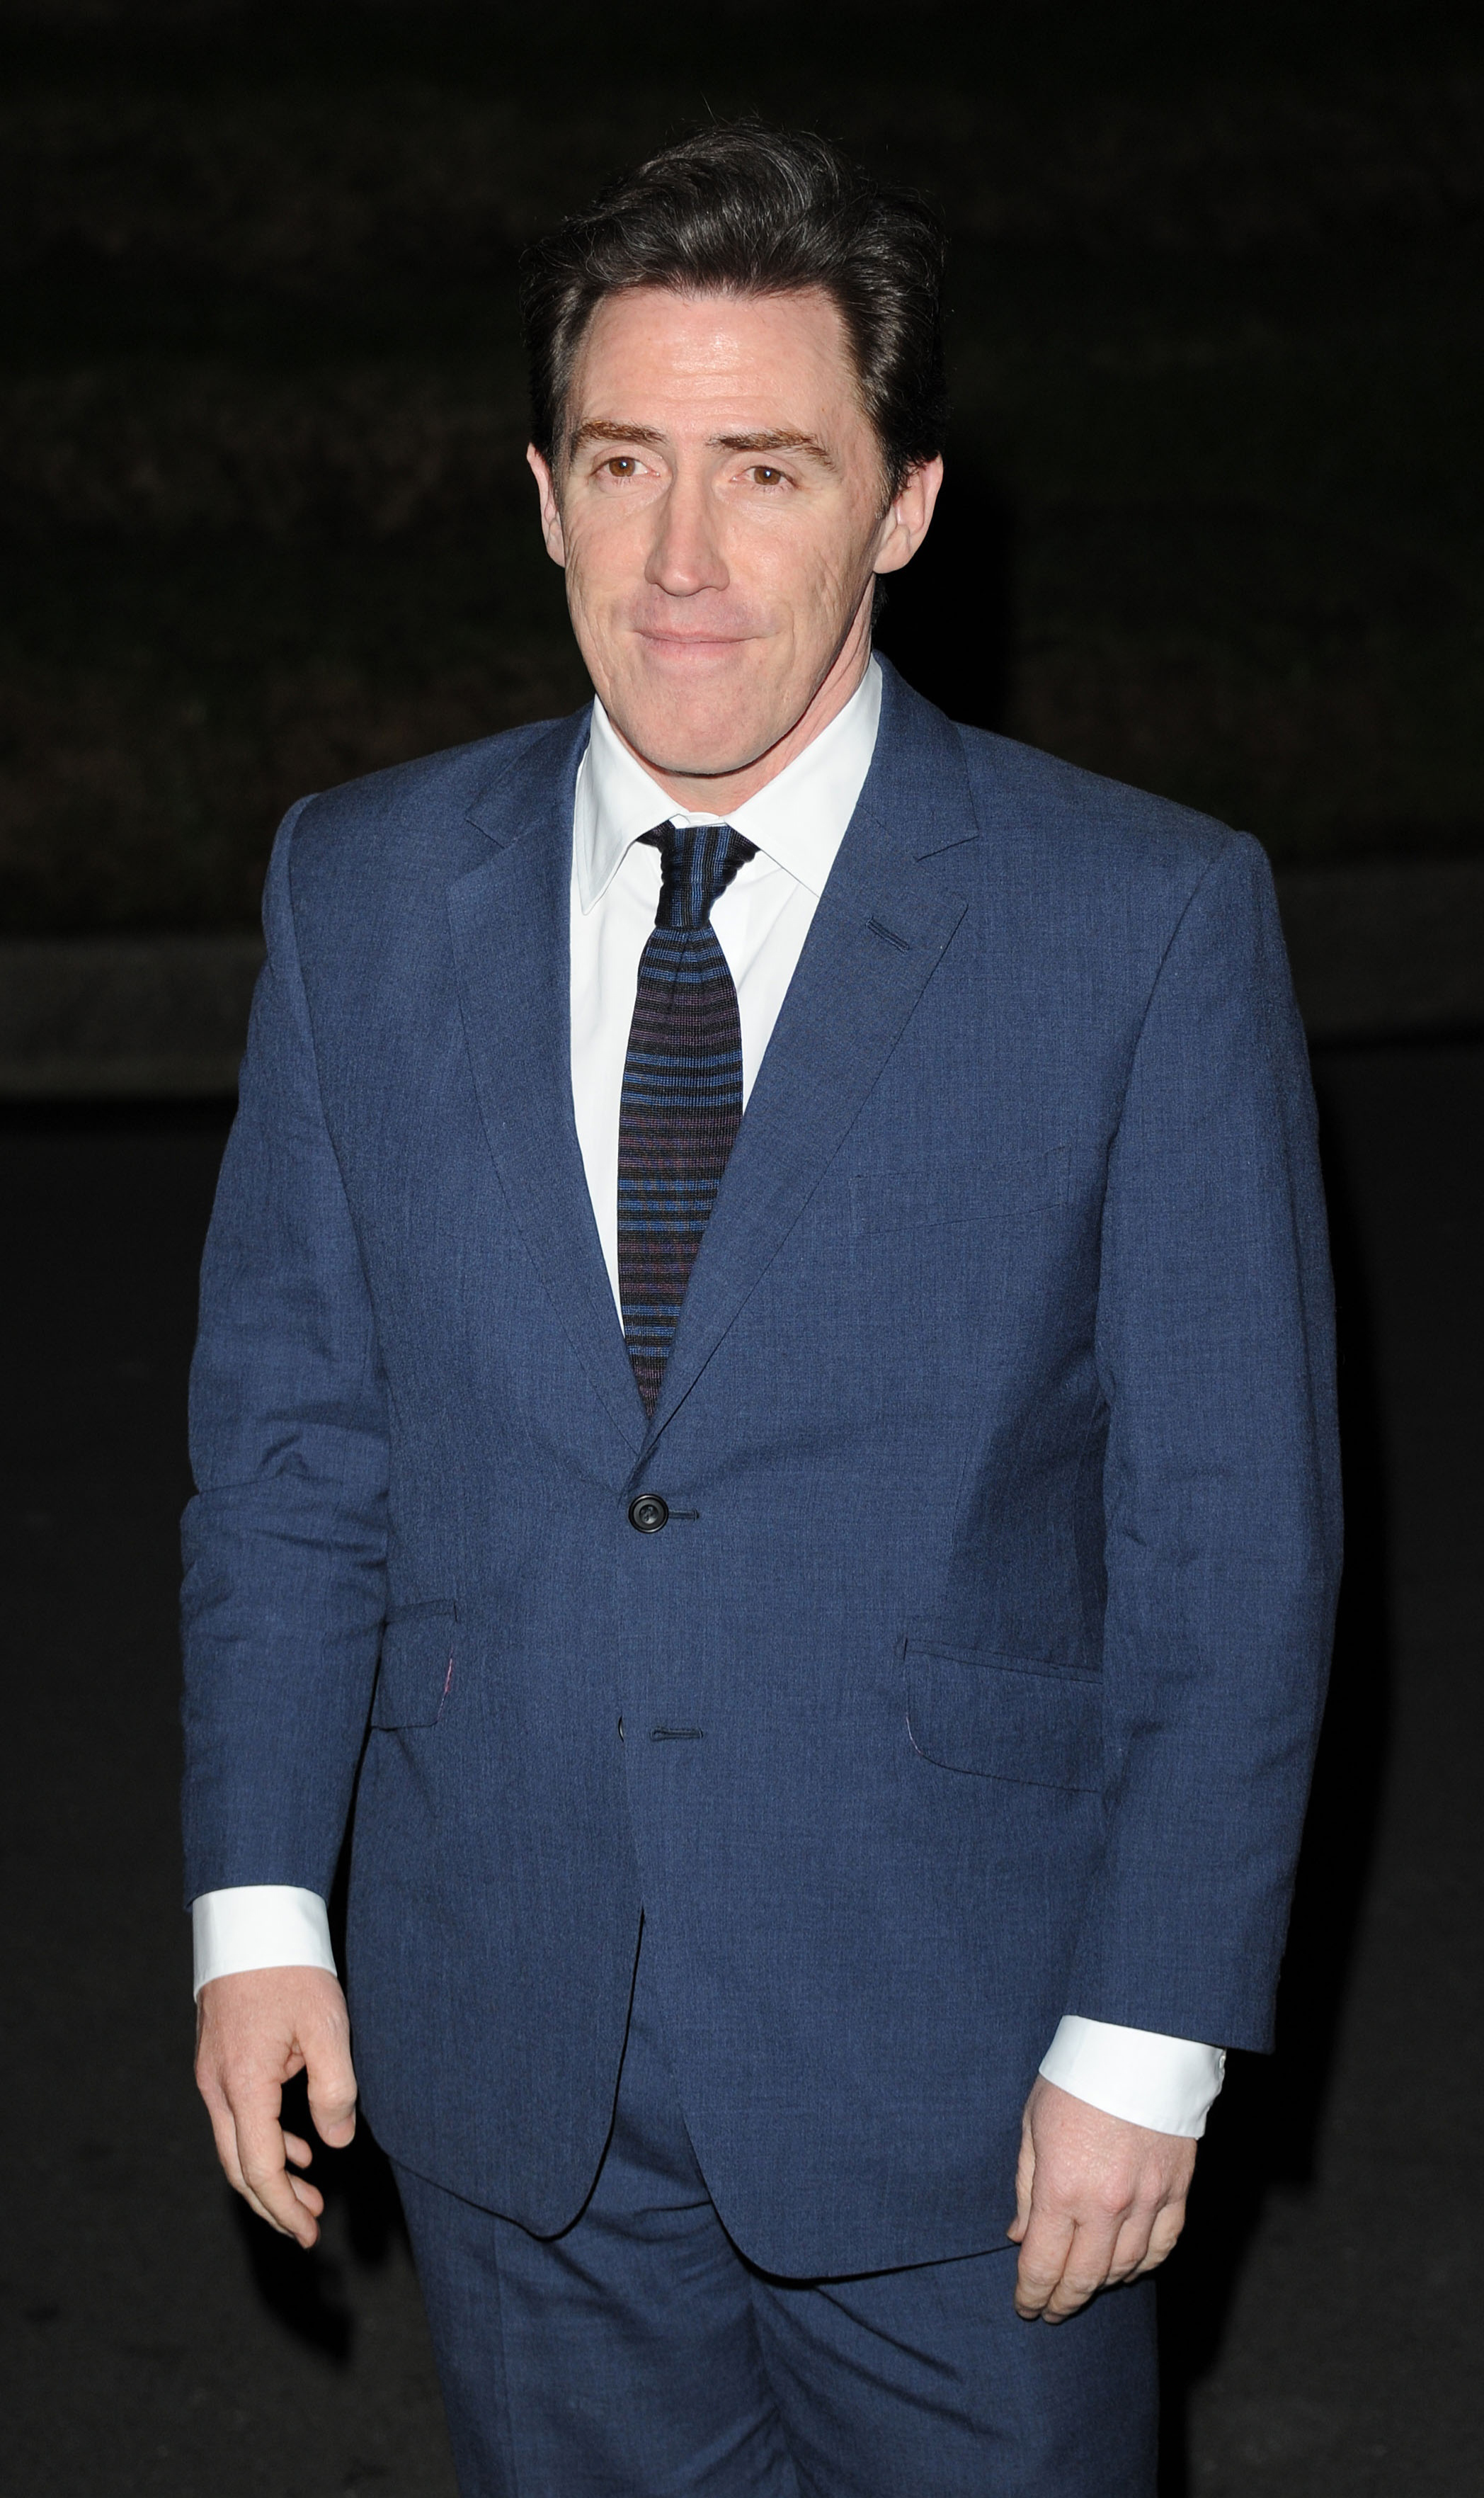 Rob Brydon takes comedy to an insensitive new low as he 'jokes' about Stephen Fry suicide attempt